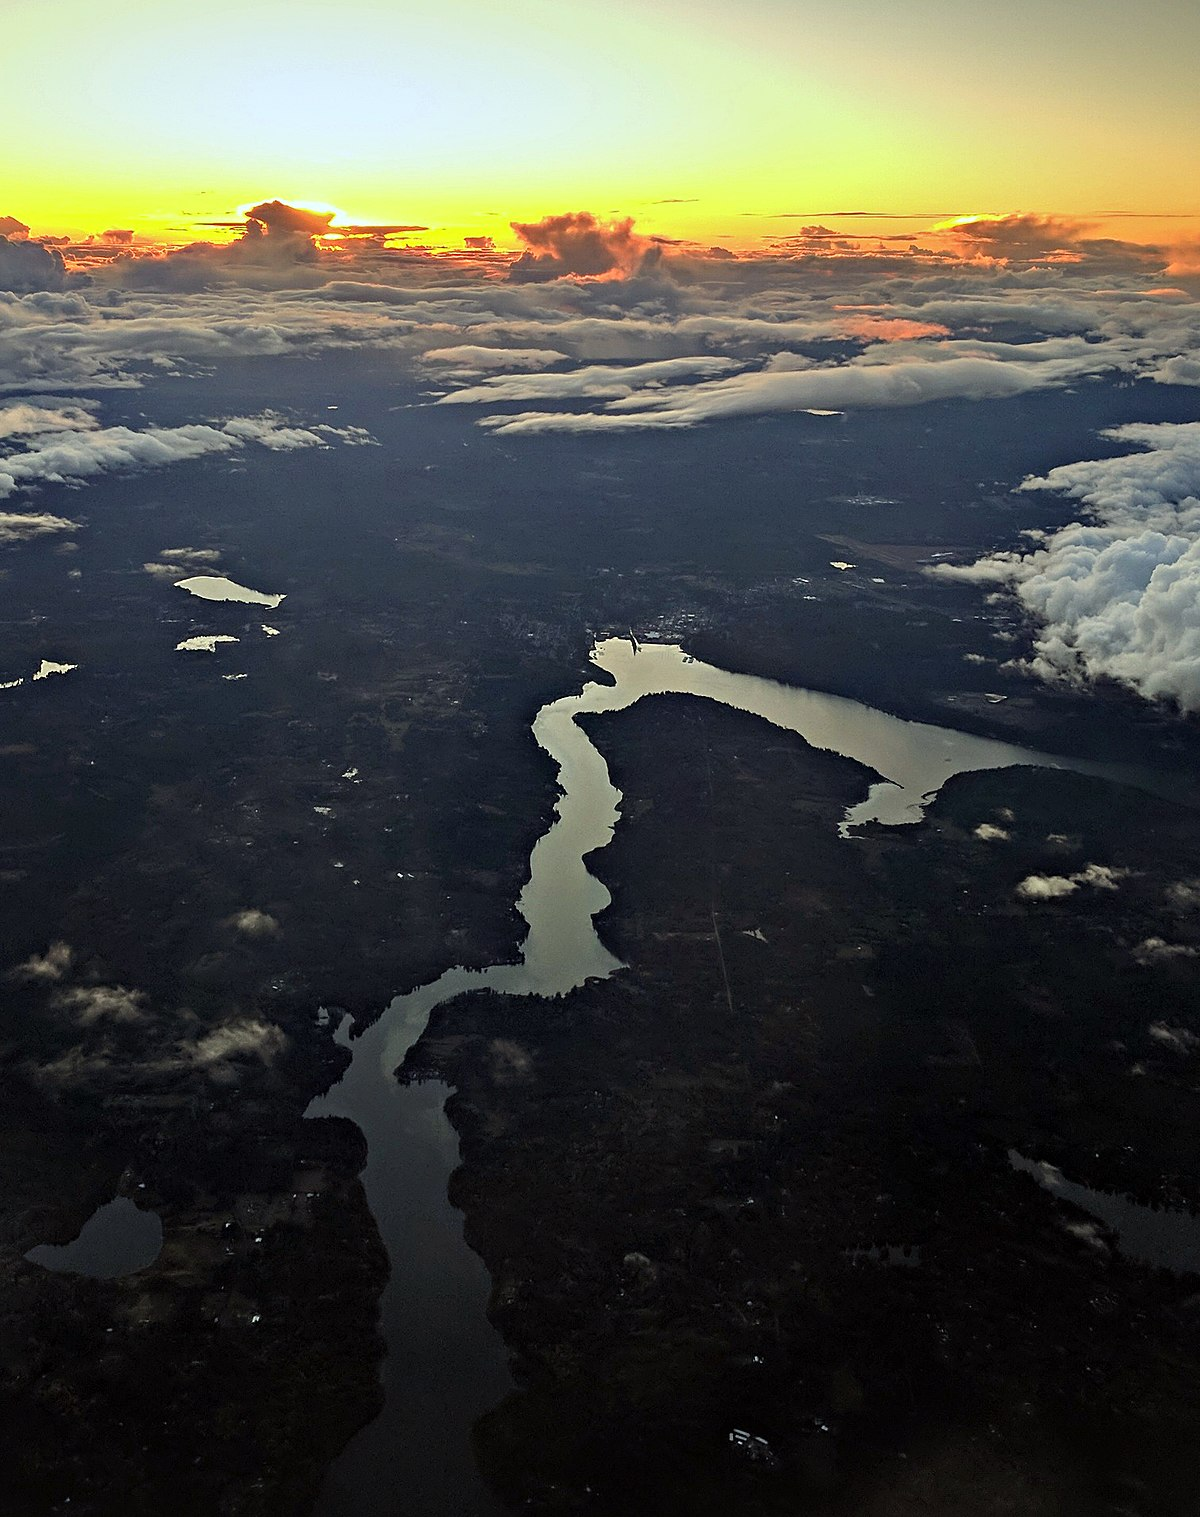 How Many Miles From >> Hammersley Inlet - Wikipedia